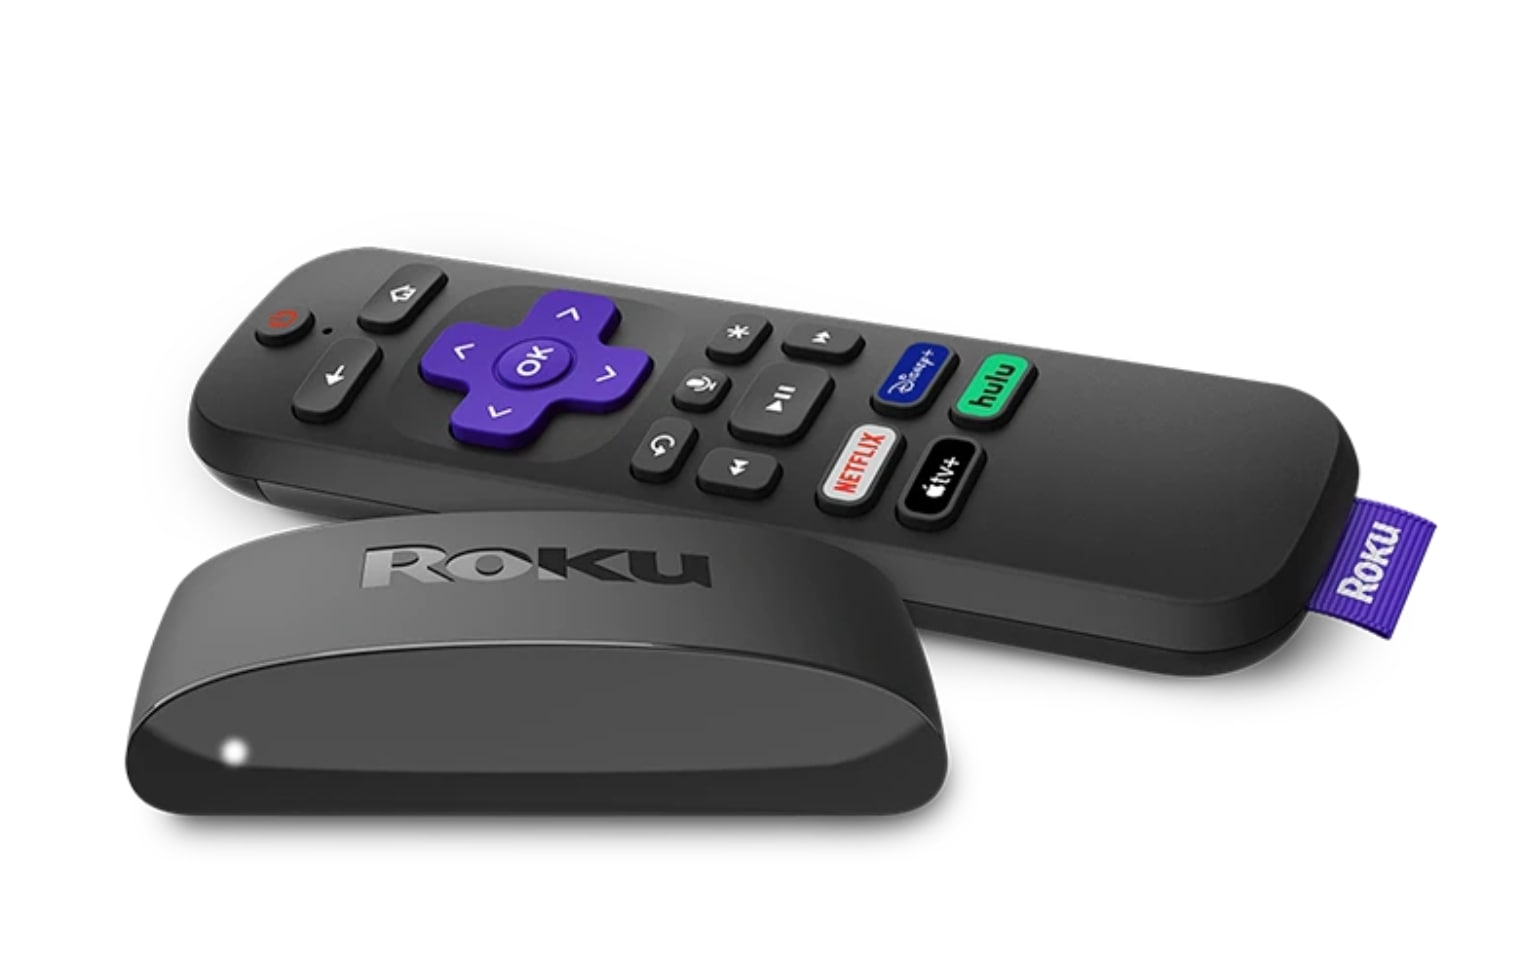 Roku's new voice remote is perfect for fans of Apple TV+